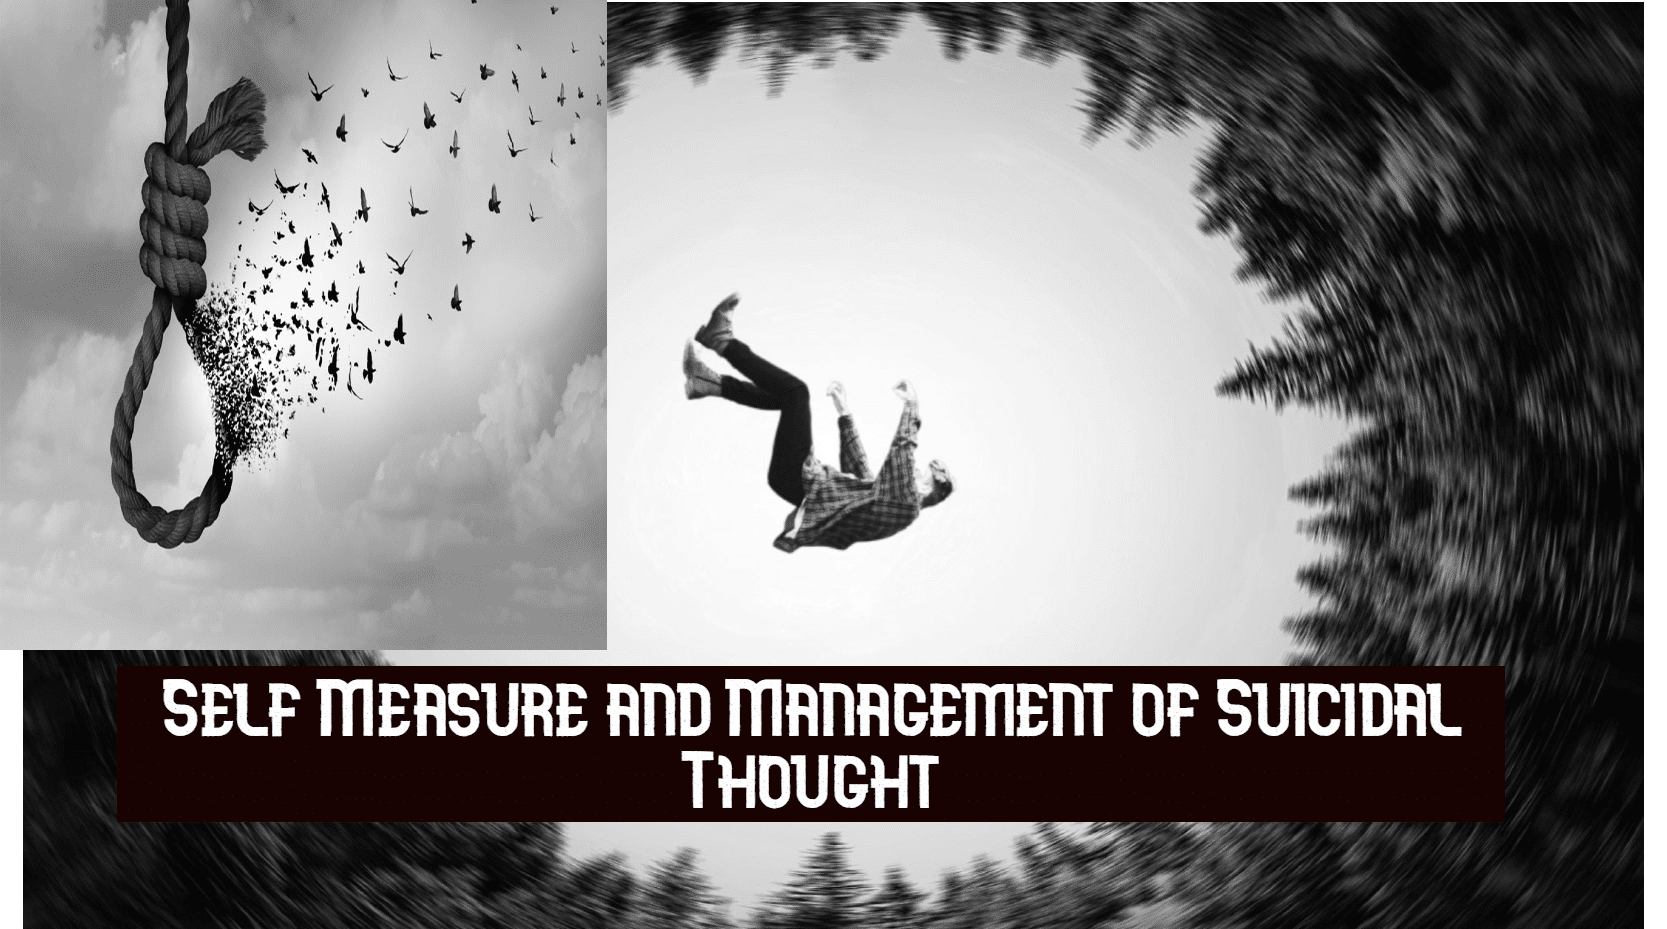 Best way to Self-measure with the management of suicidal Thoughts